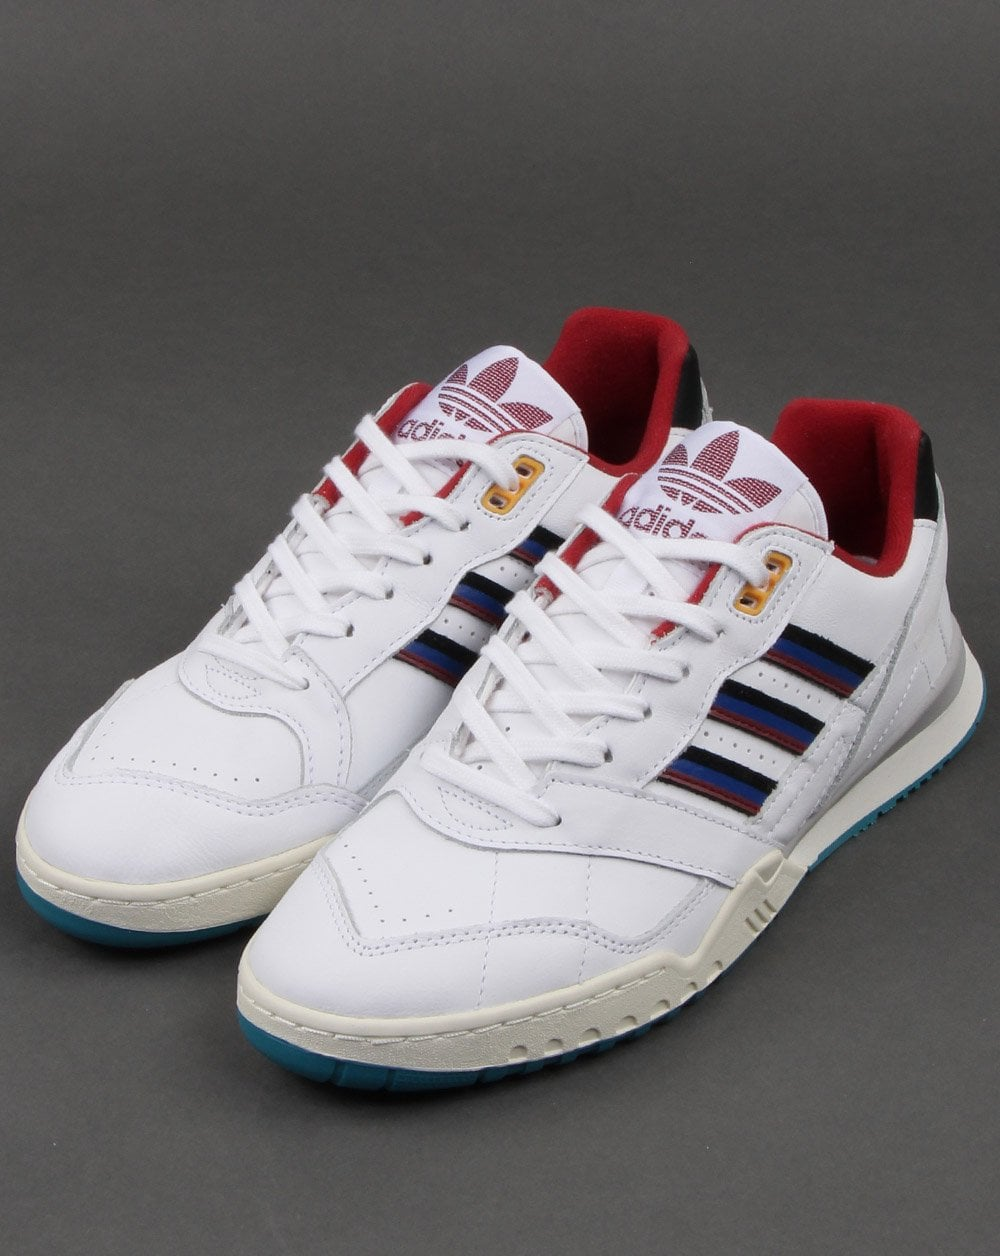 adidas AR trainer tennis retro